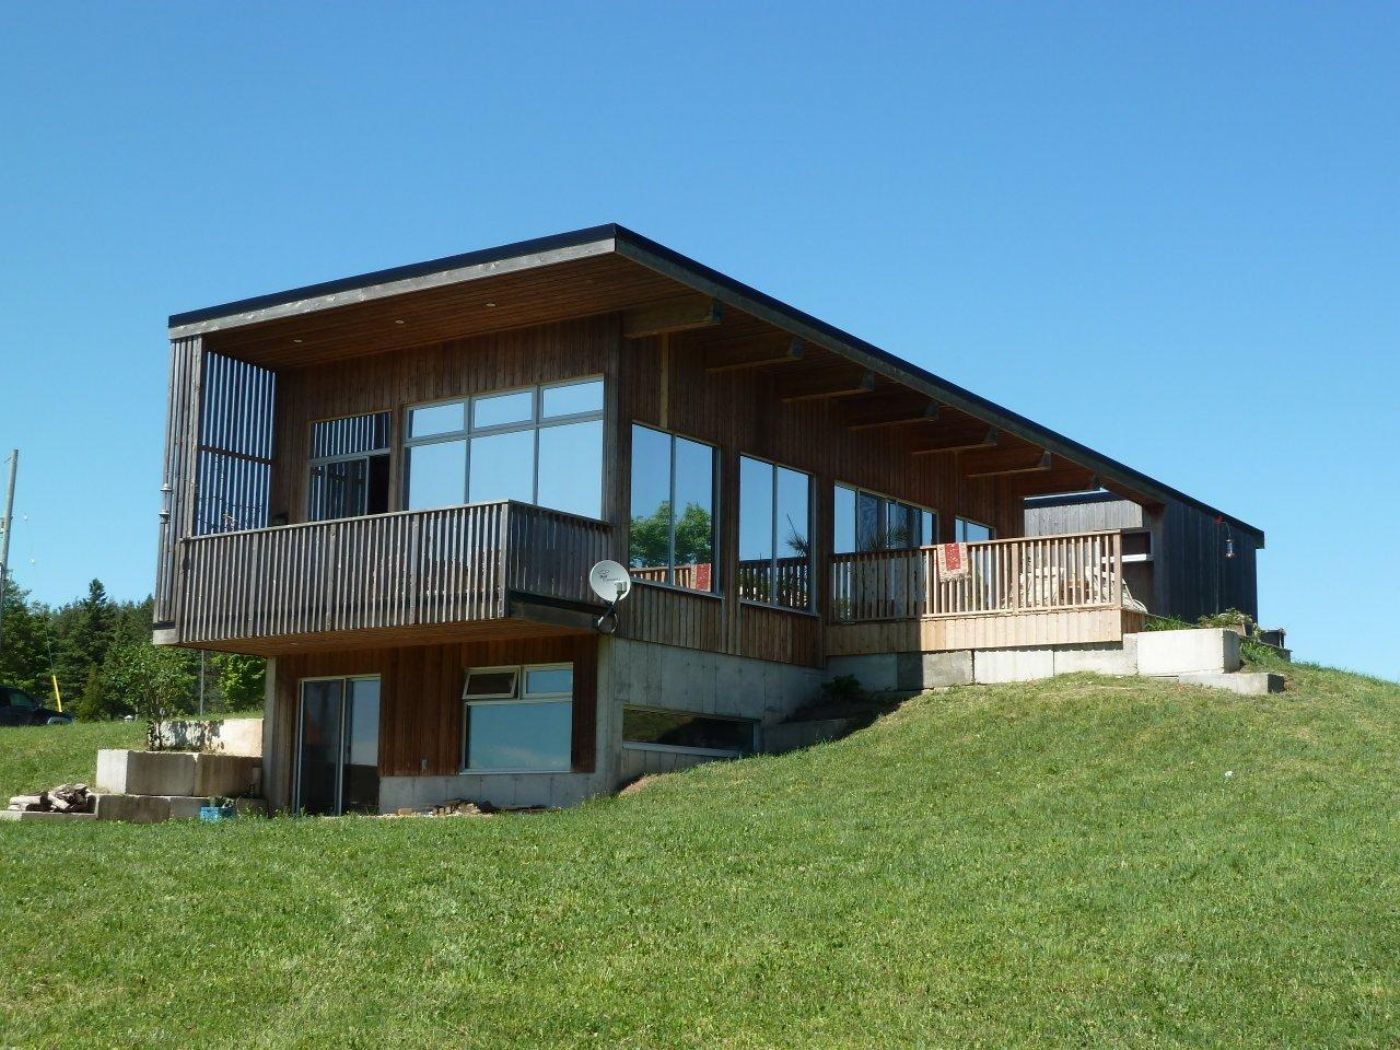 Modernist design caledon country homes luxury real estate for Big modern houses for sale